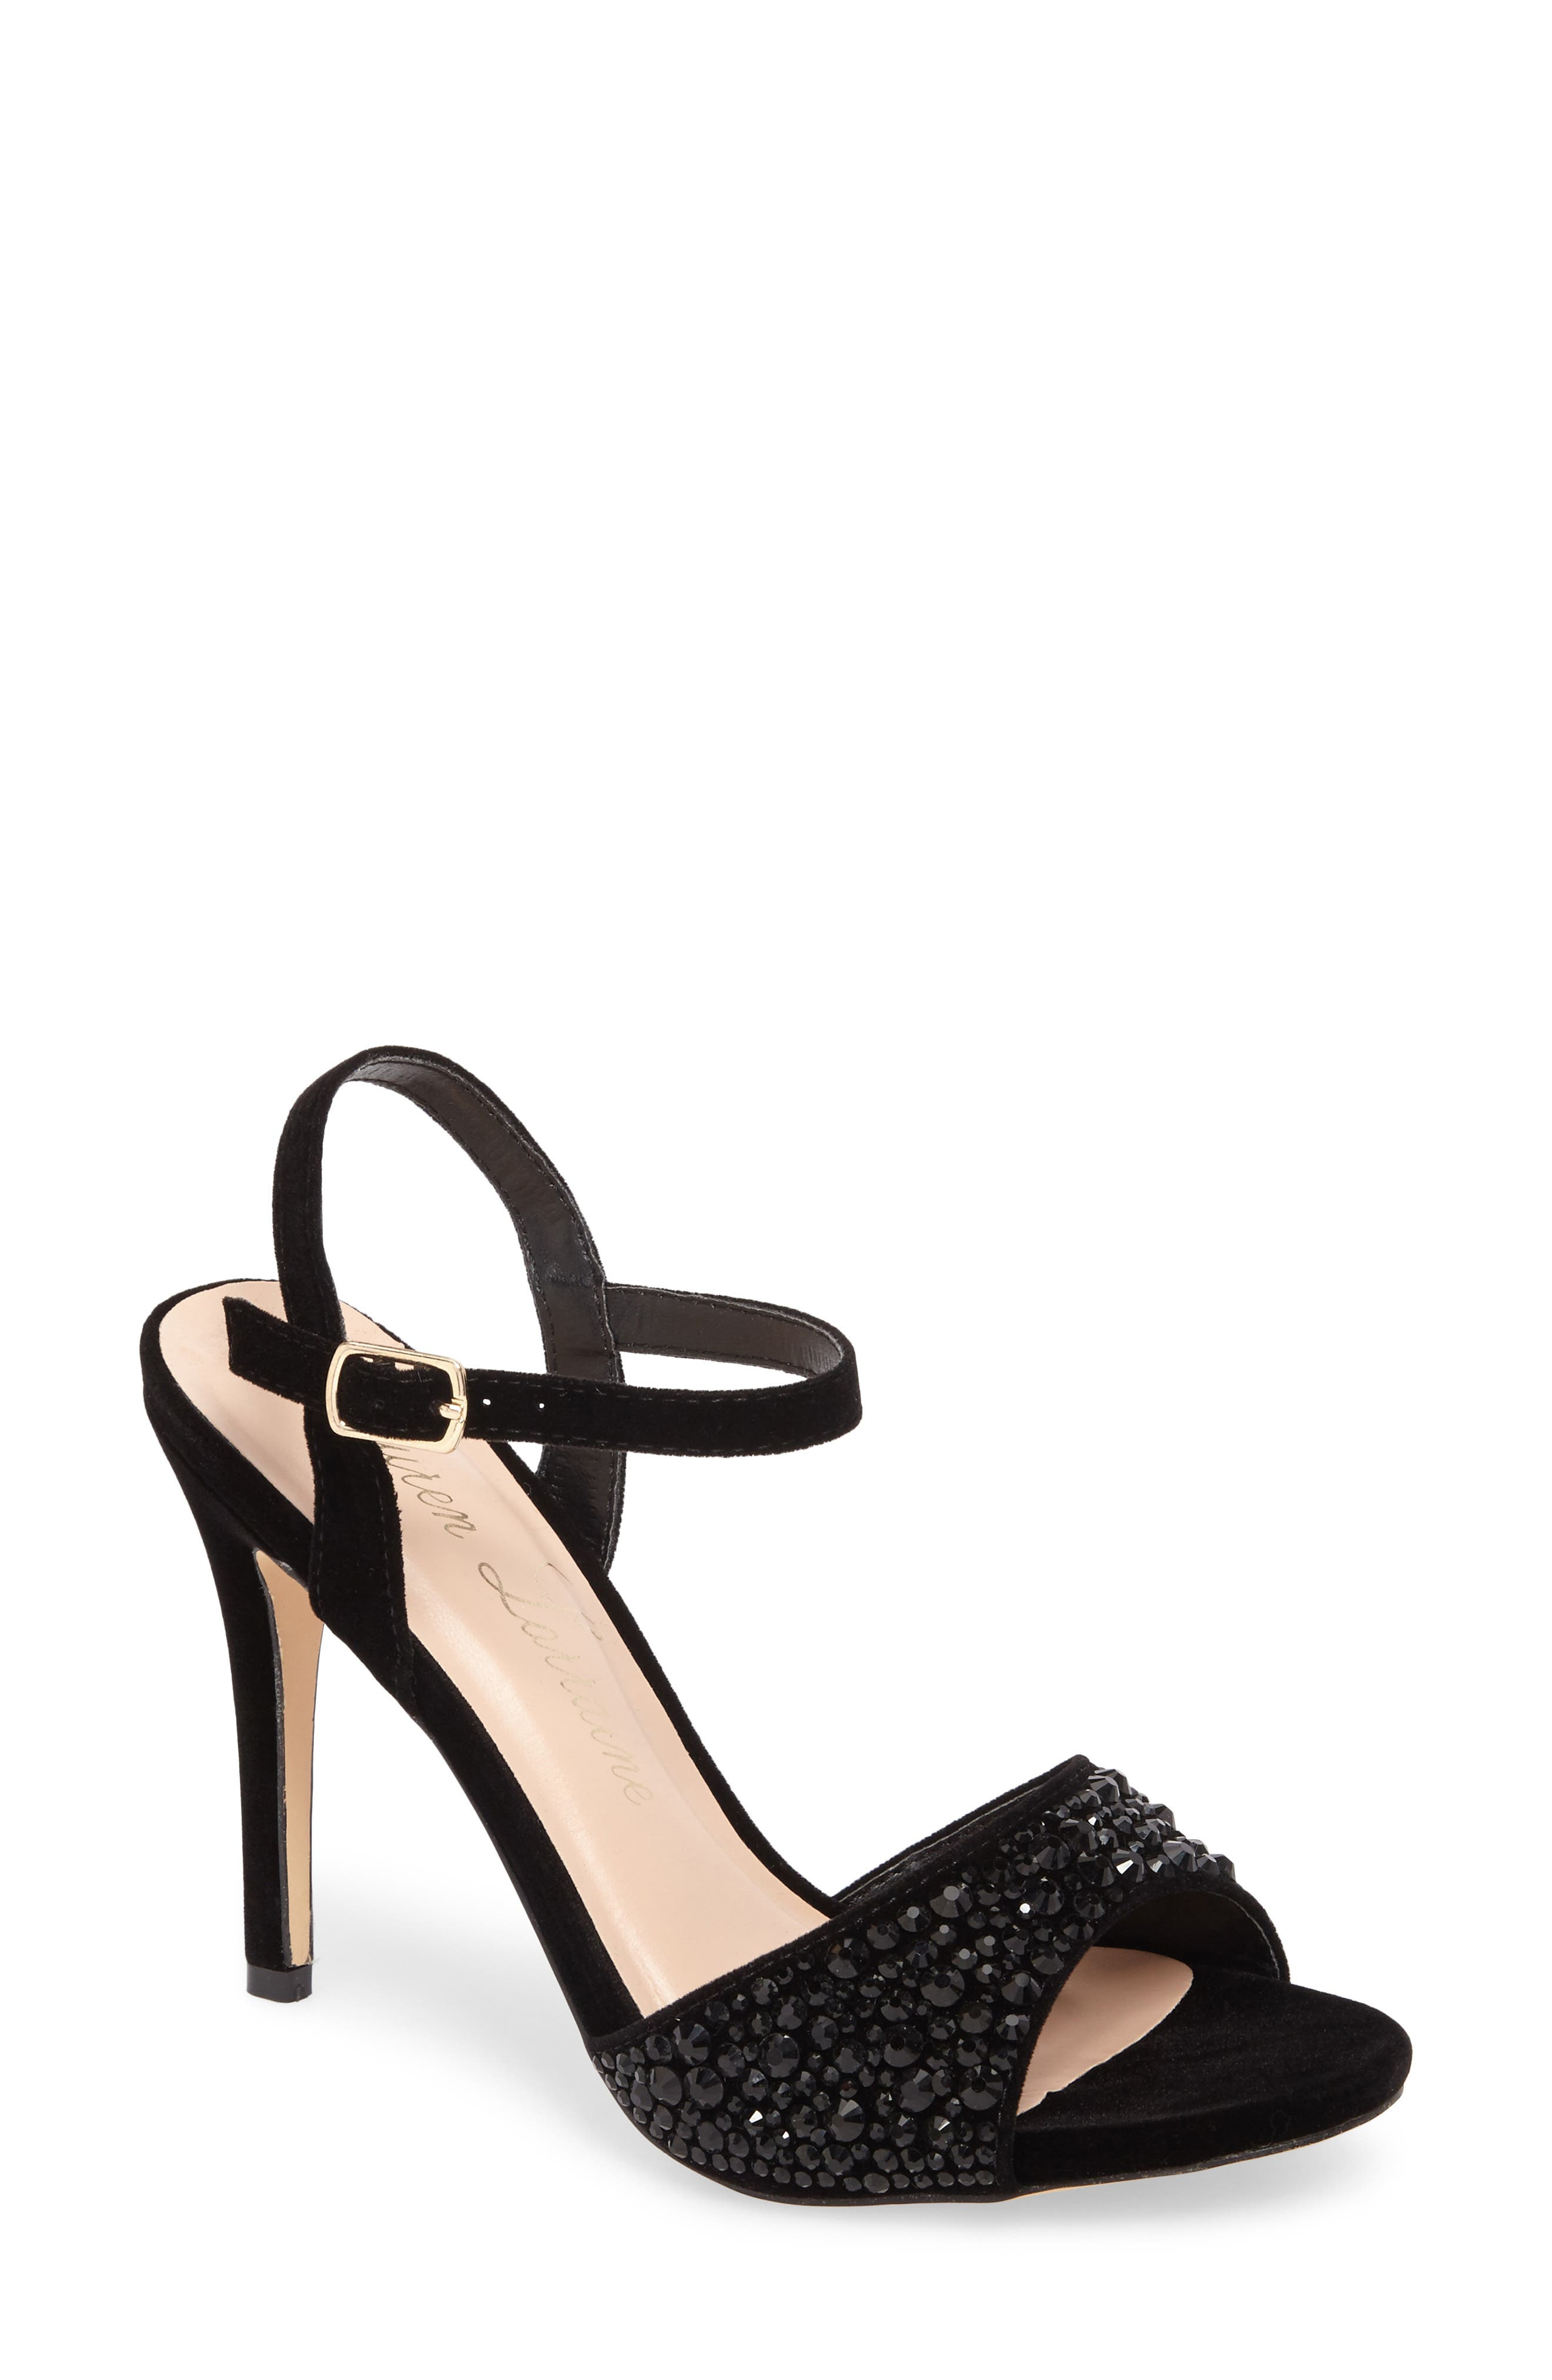 Marti Embellished Sandal,                         Main,                         color, Black Fabric